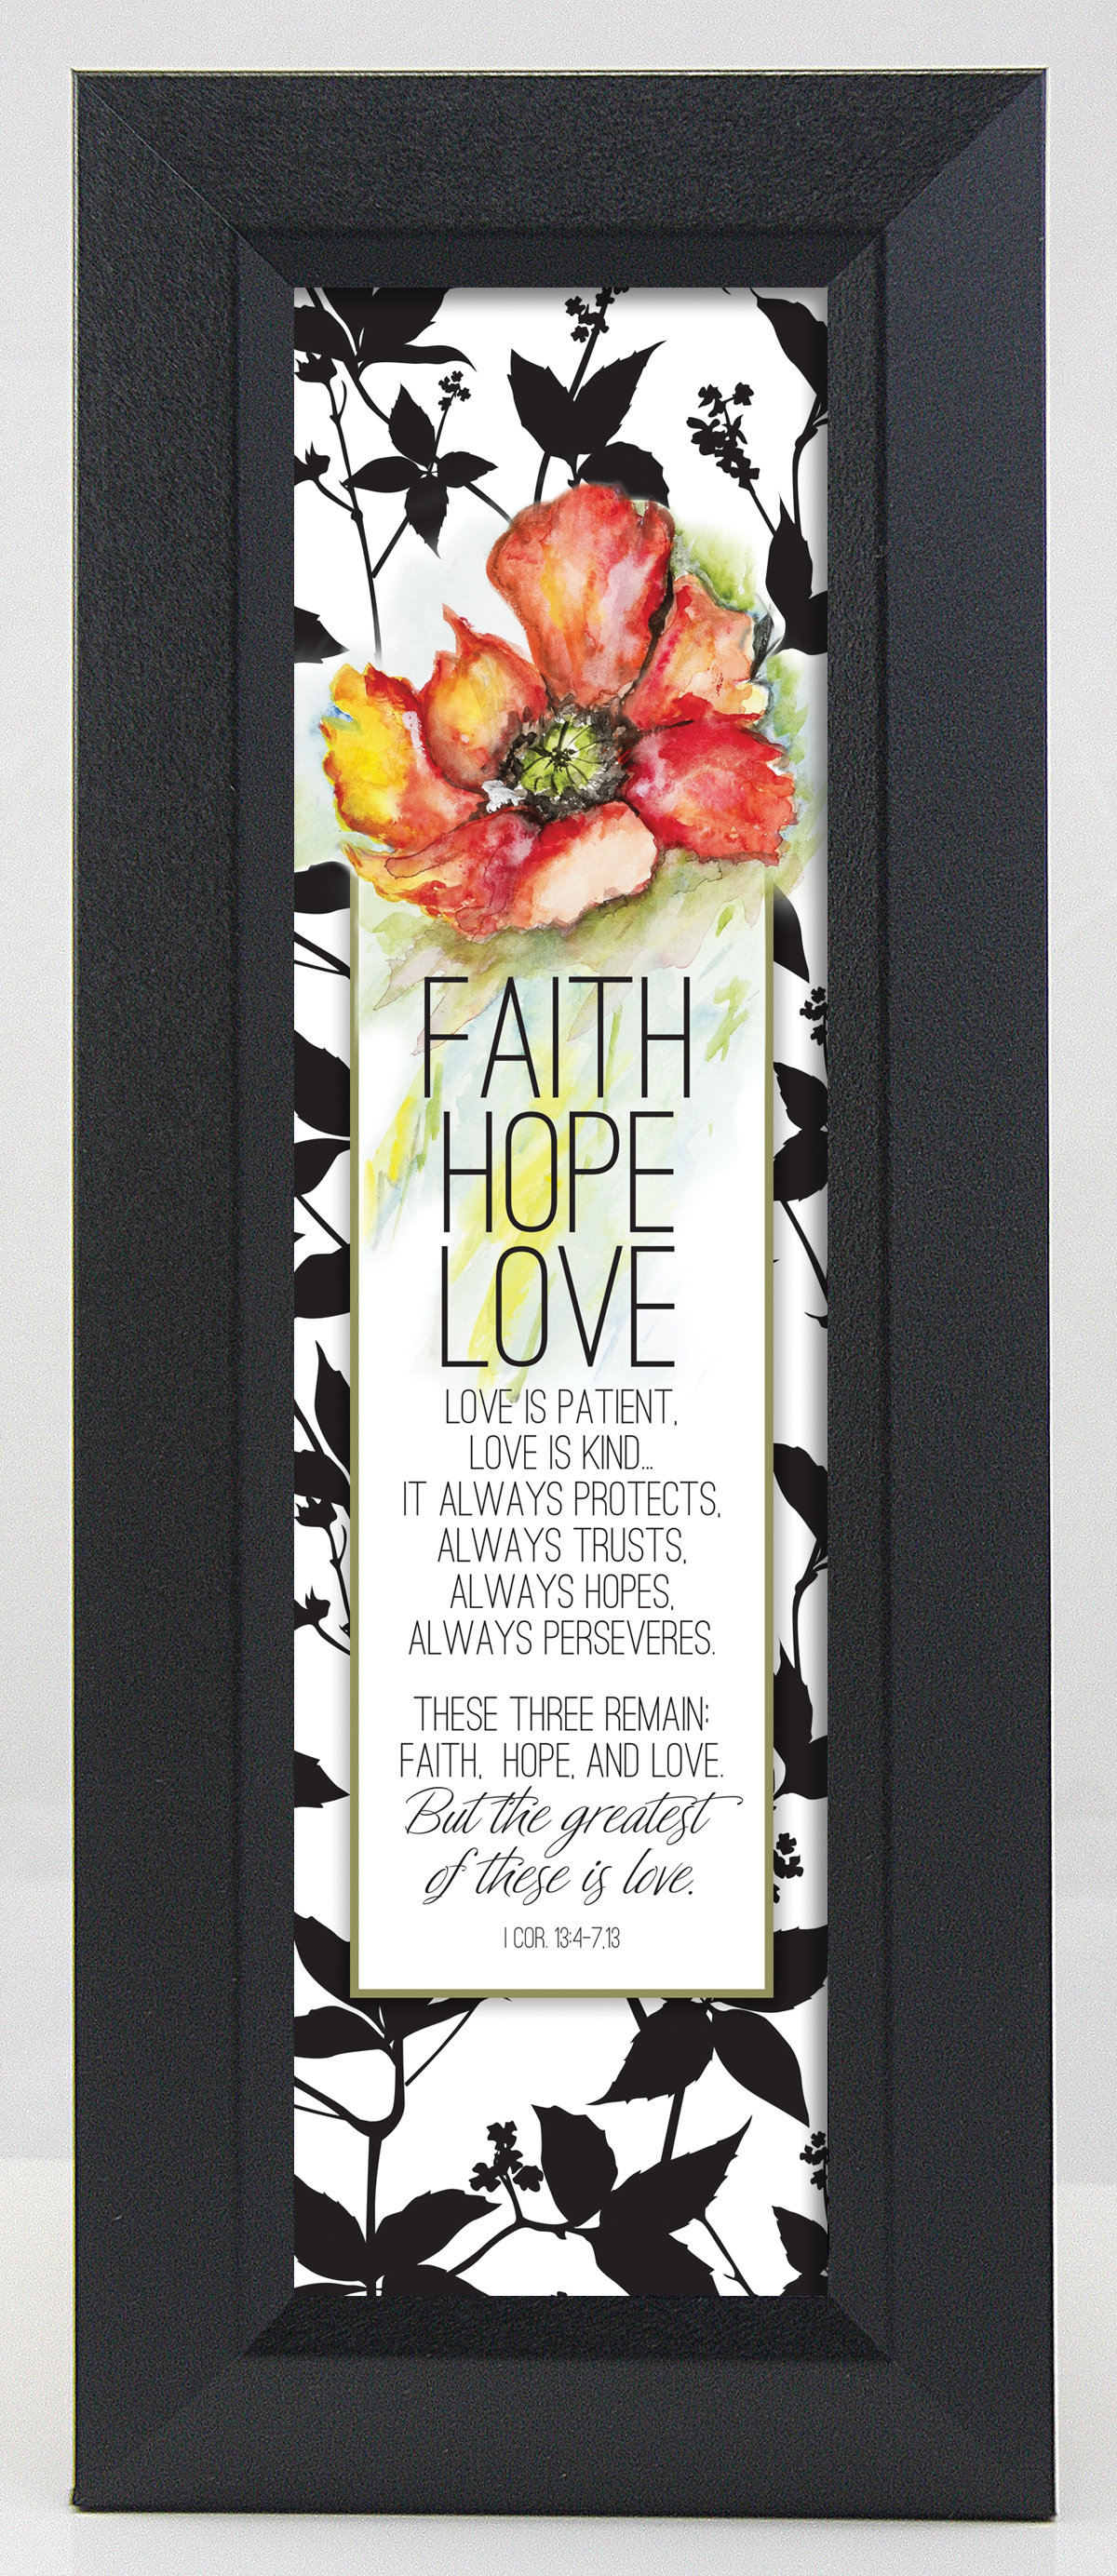 Faith, Hope, Love Floral Wall Plaque framed picture, inspirational message, home decor, wall decor, framed art, words of grace, 9016